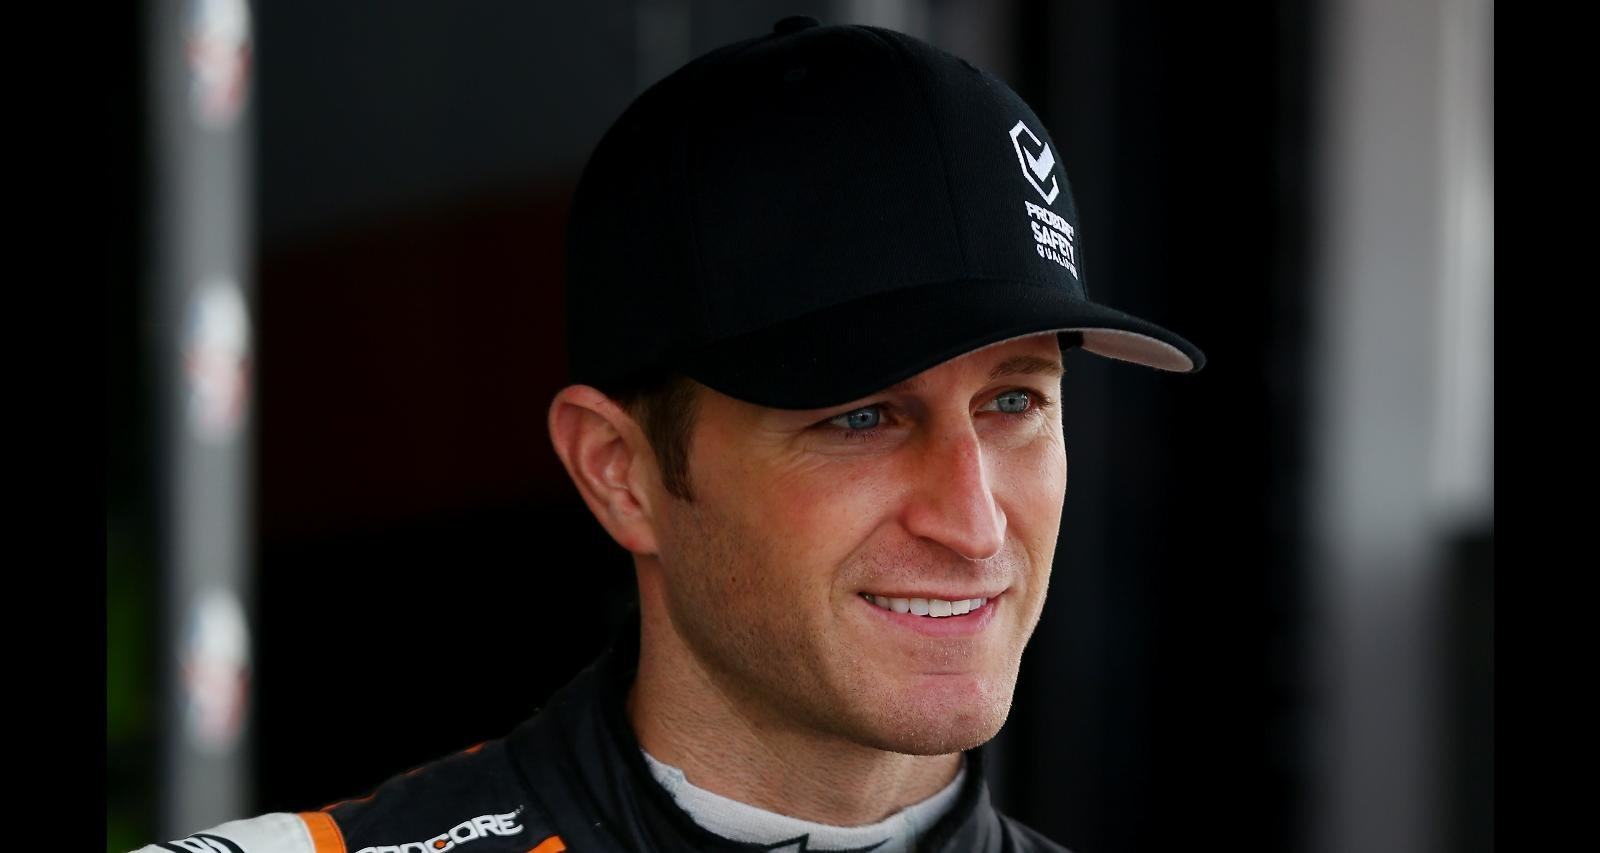 Facts about Kasey Kahne's Girlfriend